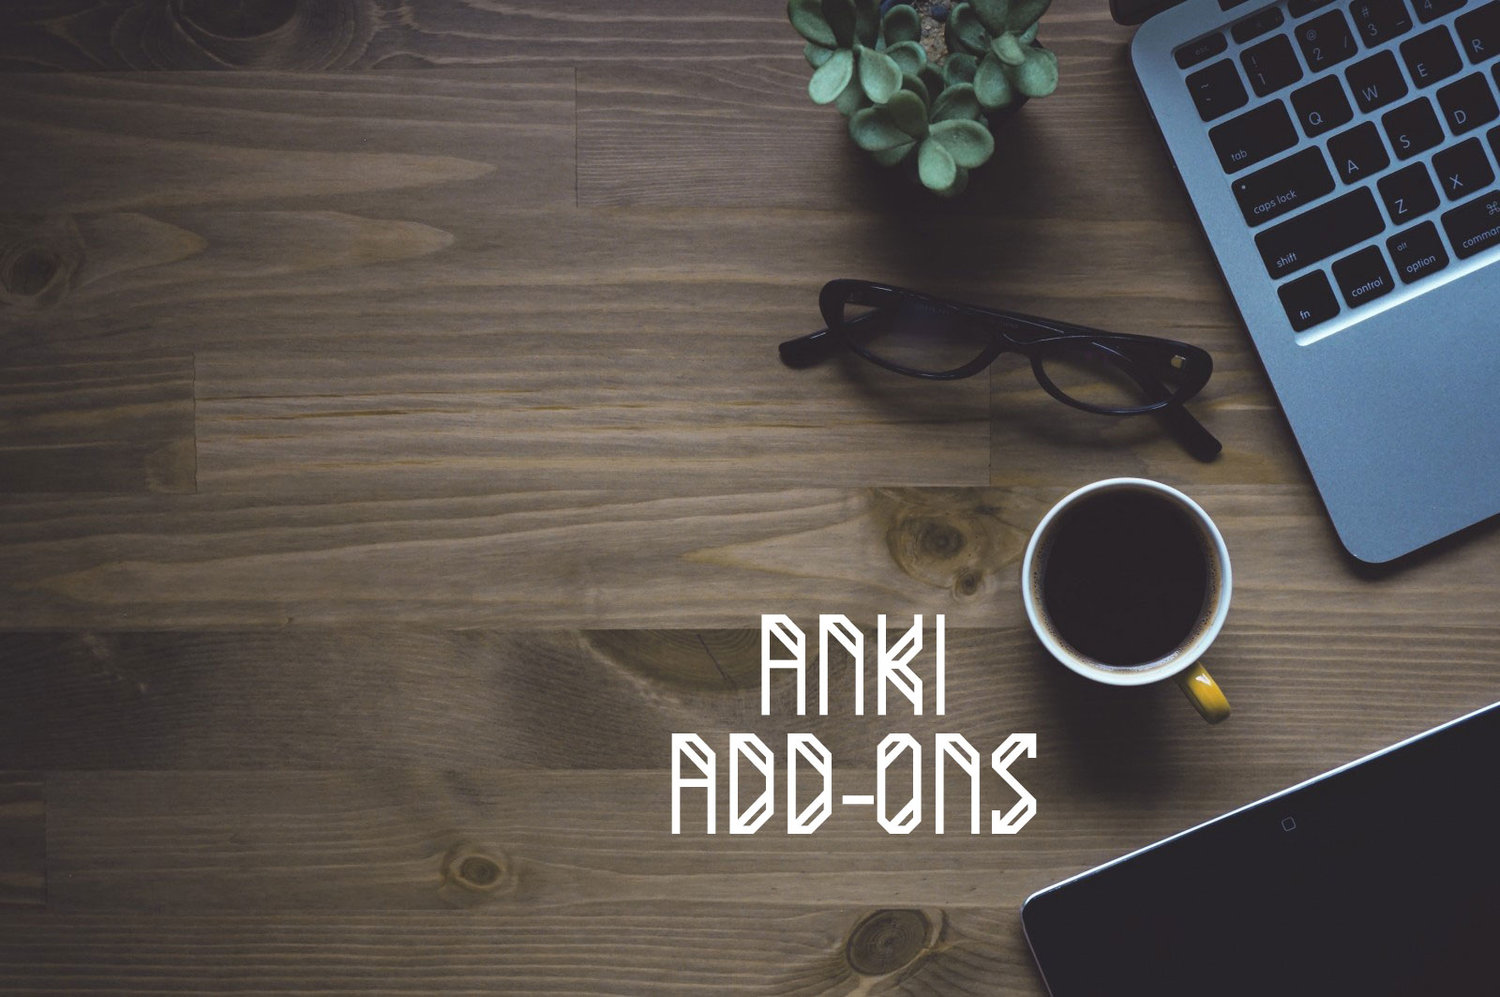 Hoochie Mama Anki Add On : 0:20 how to install 1:09 how to register for api key 2:31.